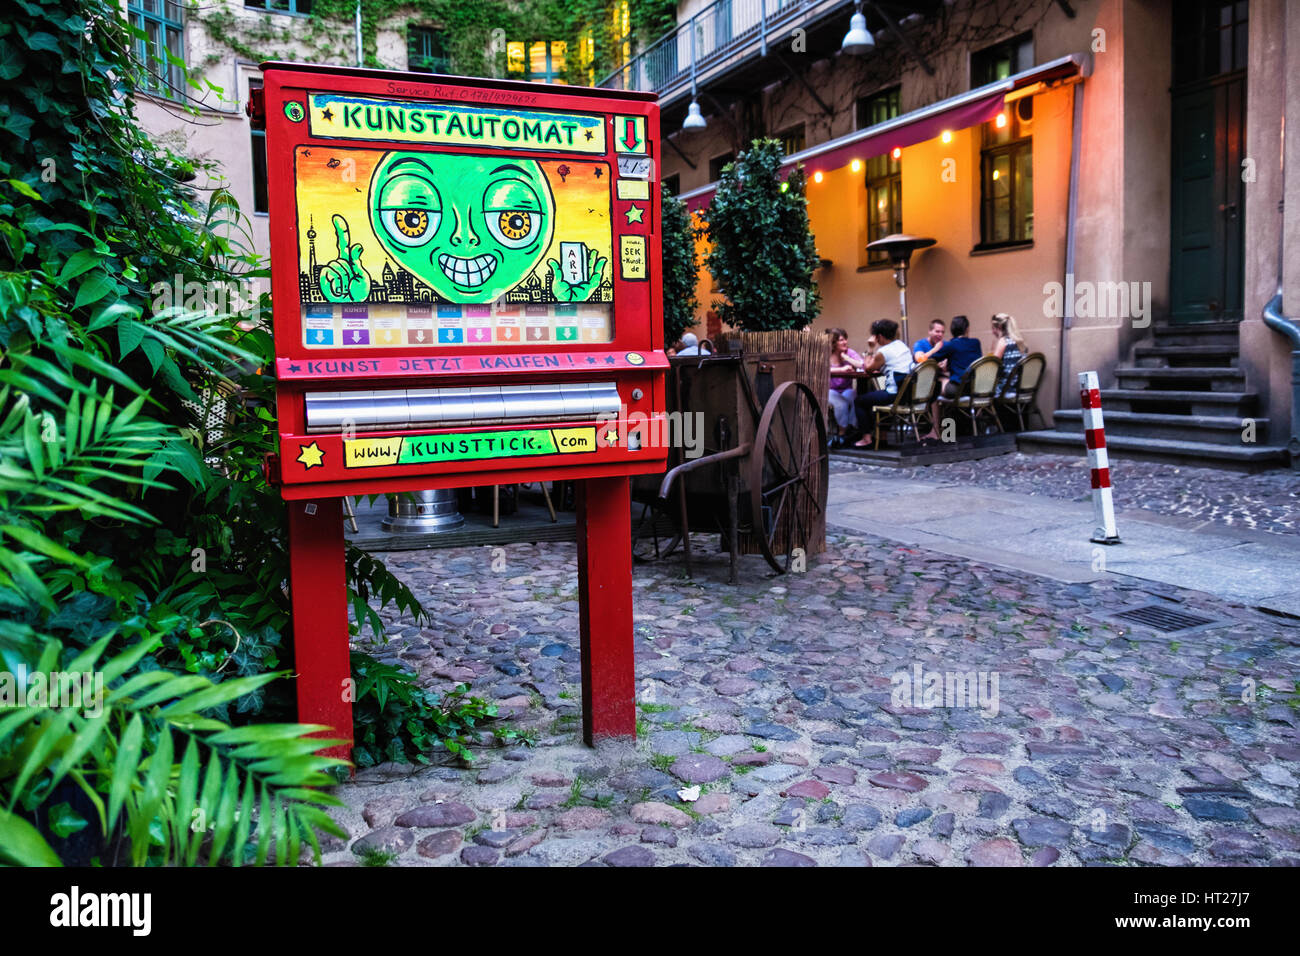 Berlin, Mitte. Kunstautomat selling affordable art. Automatic Art Machine dispenses small artworks and leaflets - Stock Image